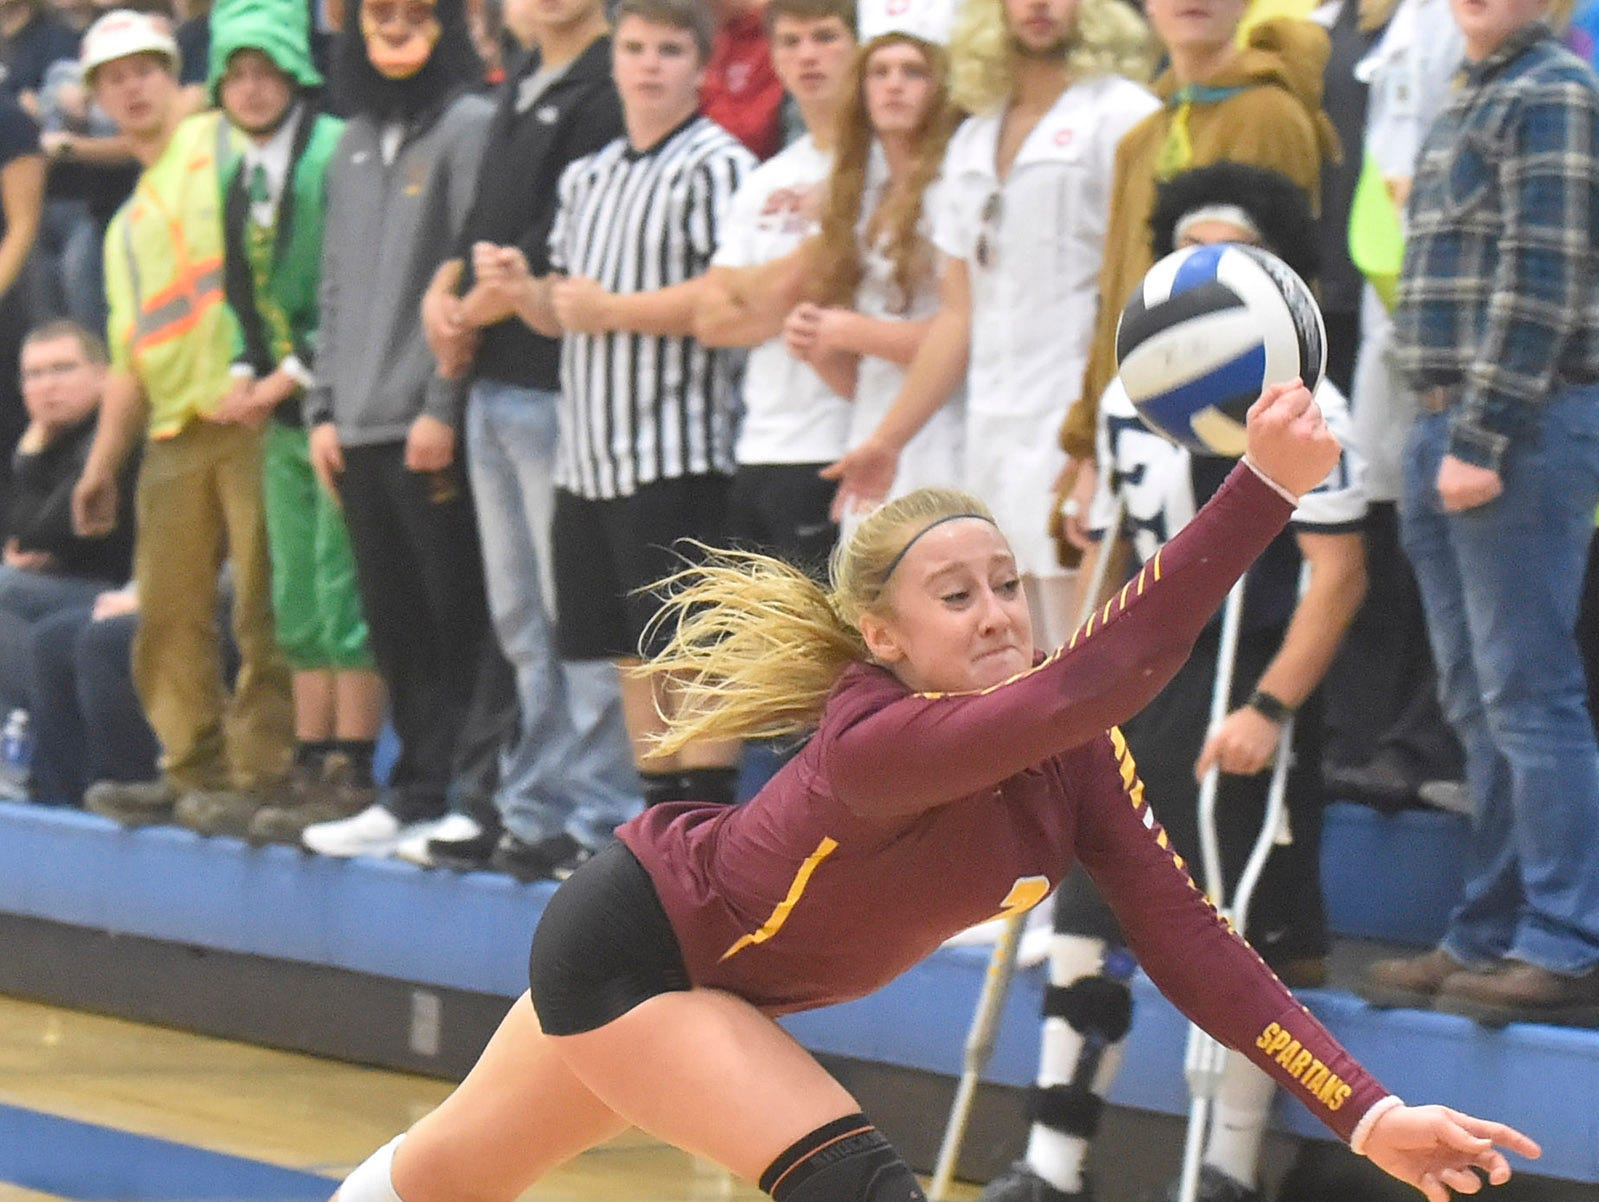 Rebekah Day of Luxemburg-Casco saves the ball with a back-handed hit against Little Chute during the WIAA Division 2 sectional championship at Wrightstown on Saturday, Oct. 27, 2018.  Tina M. Gohr/USA TODAY NETWORK-Wisconsin